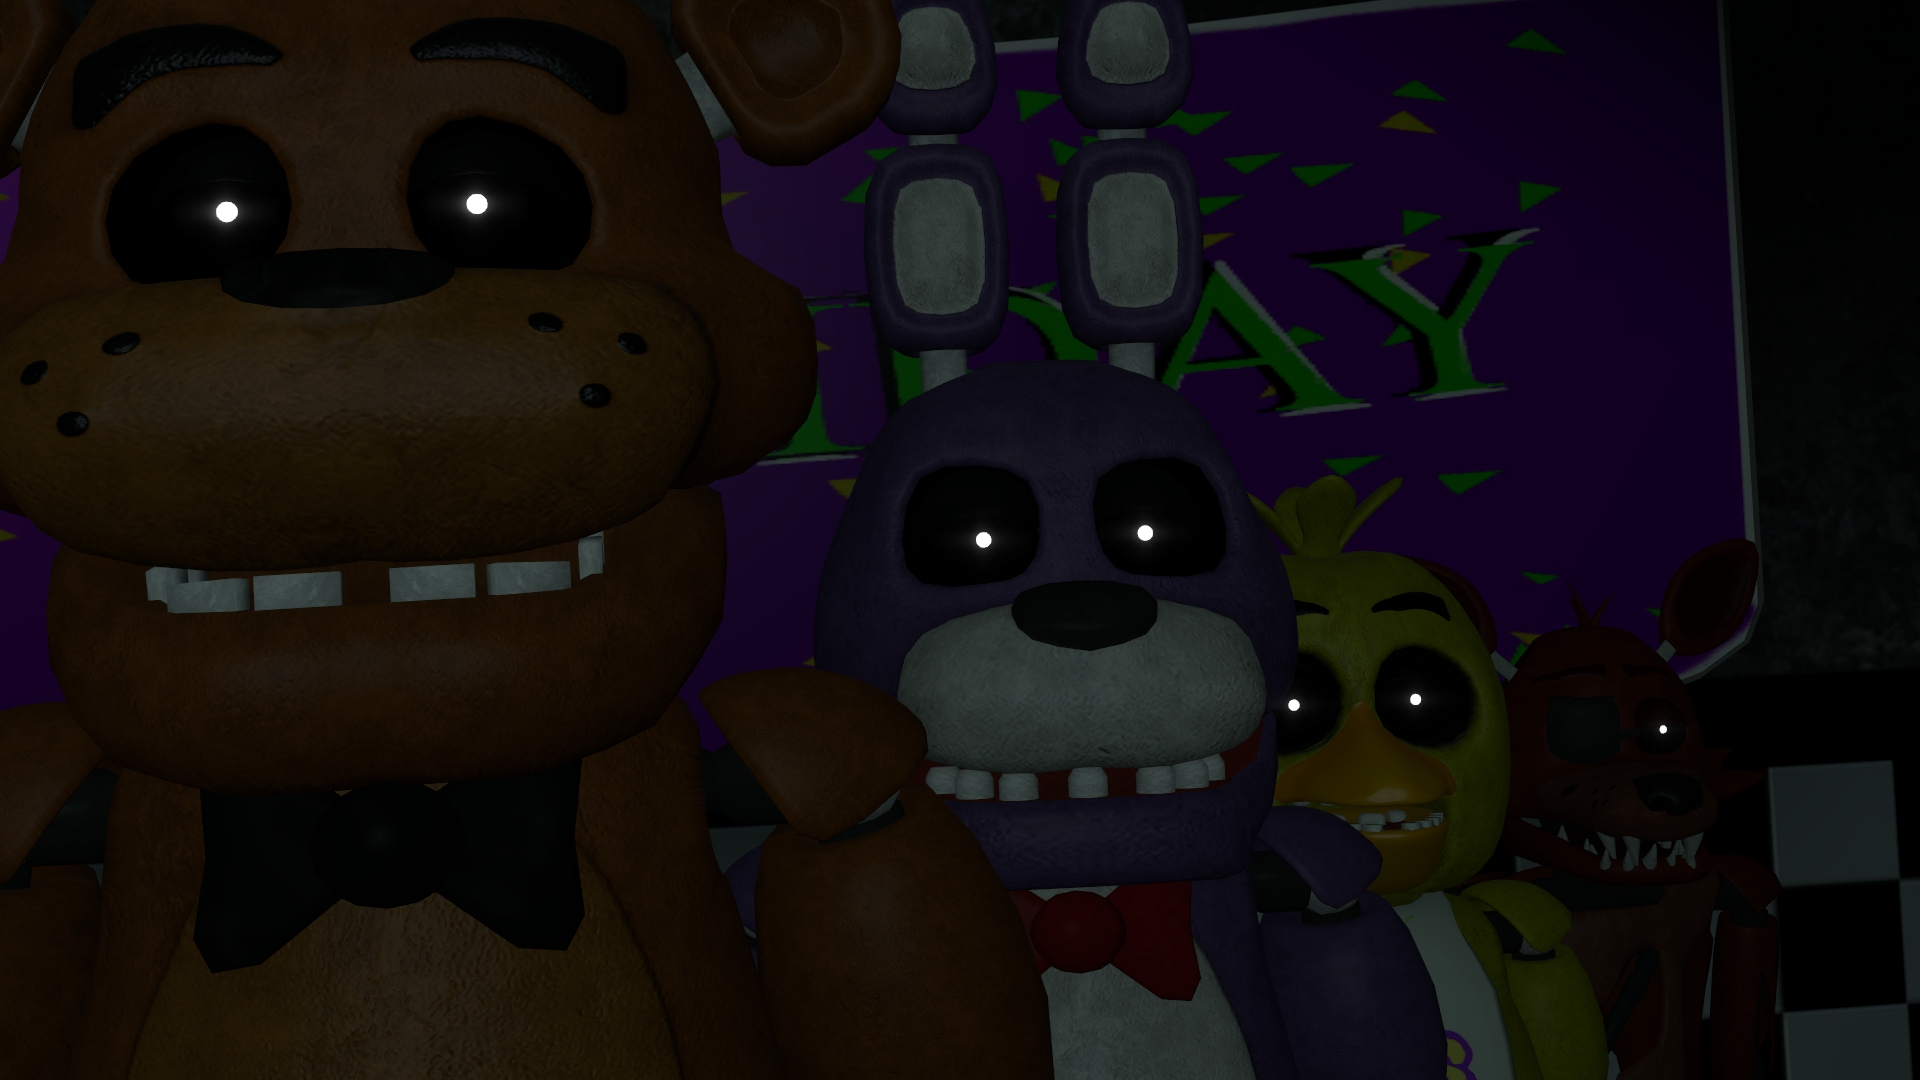 fnaf wallpaper A by datfurryoverthere 1920x1080